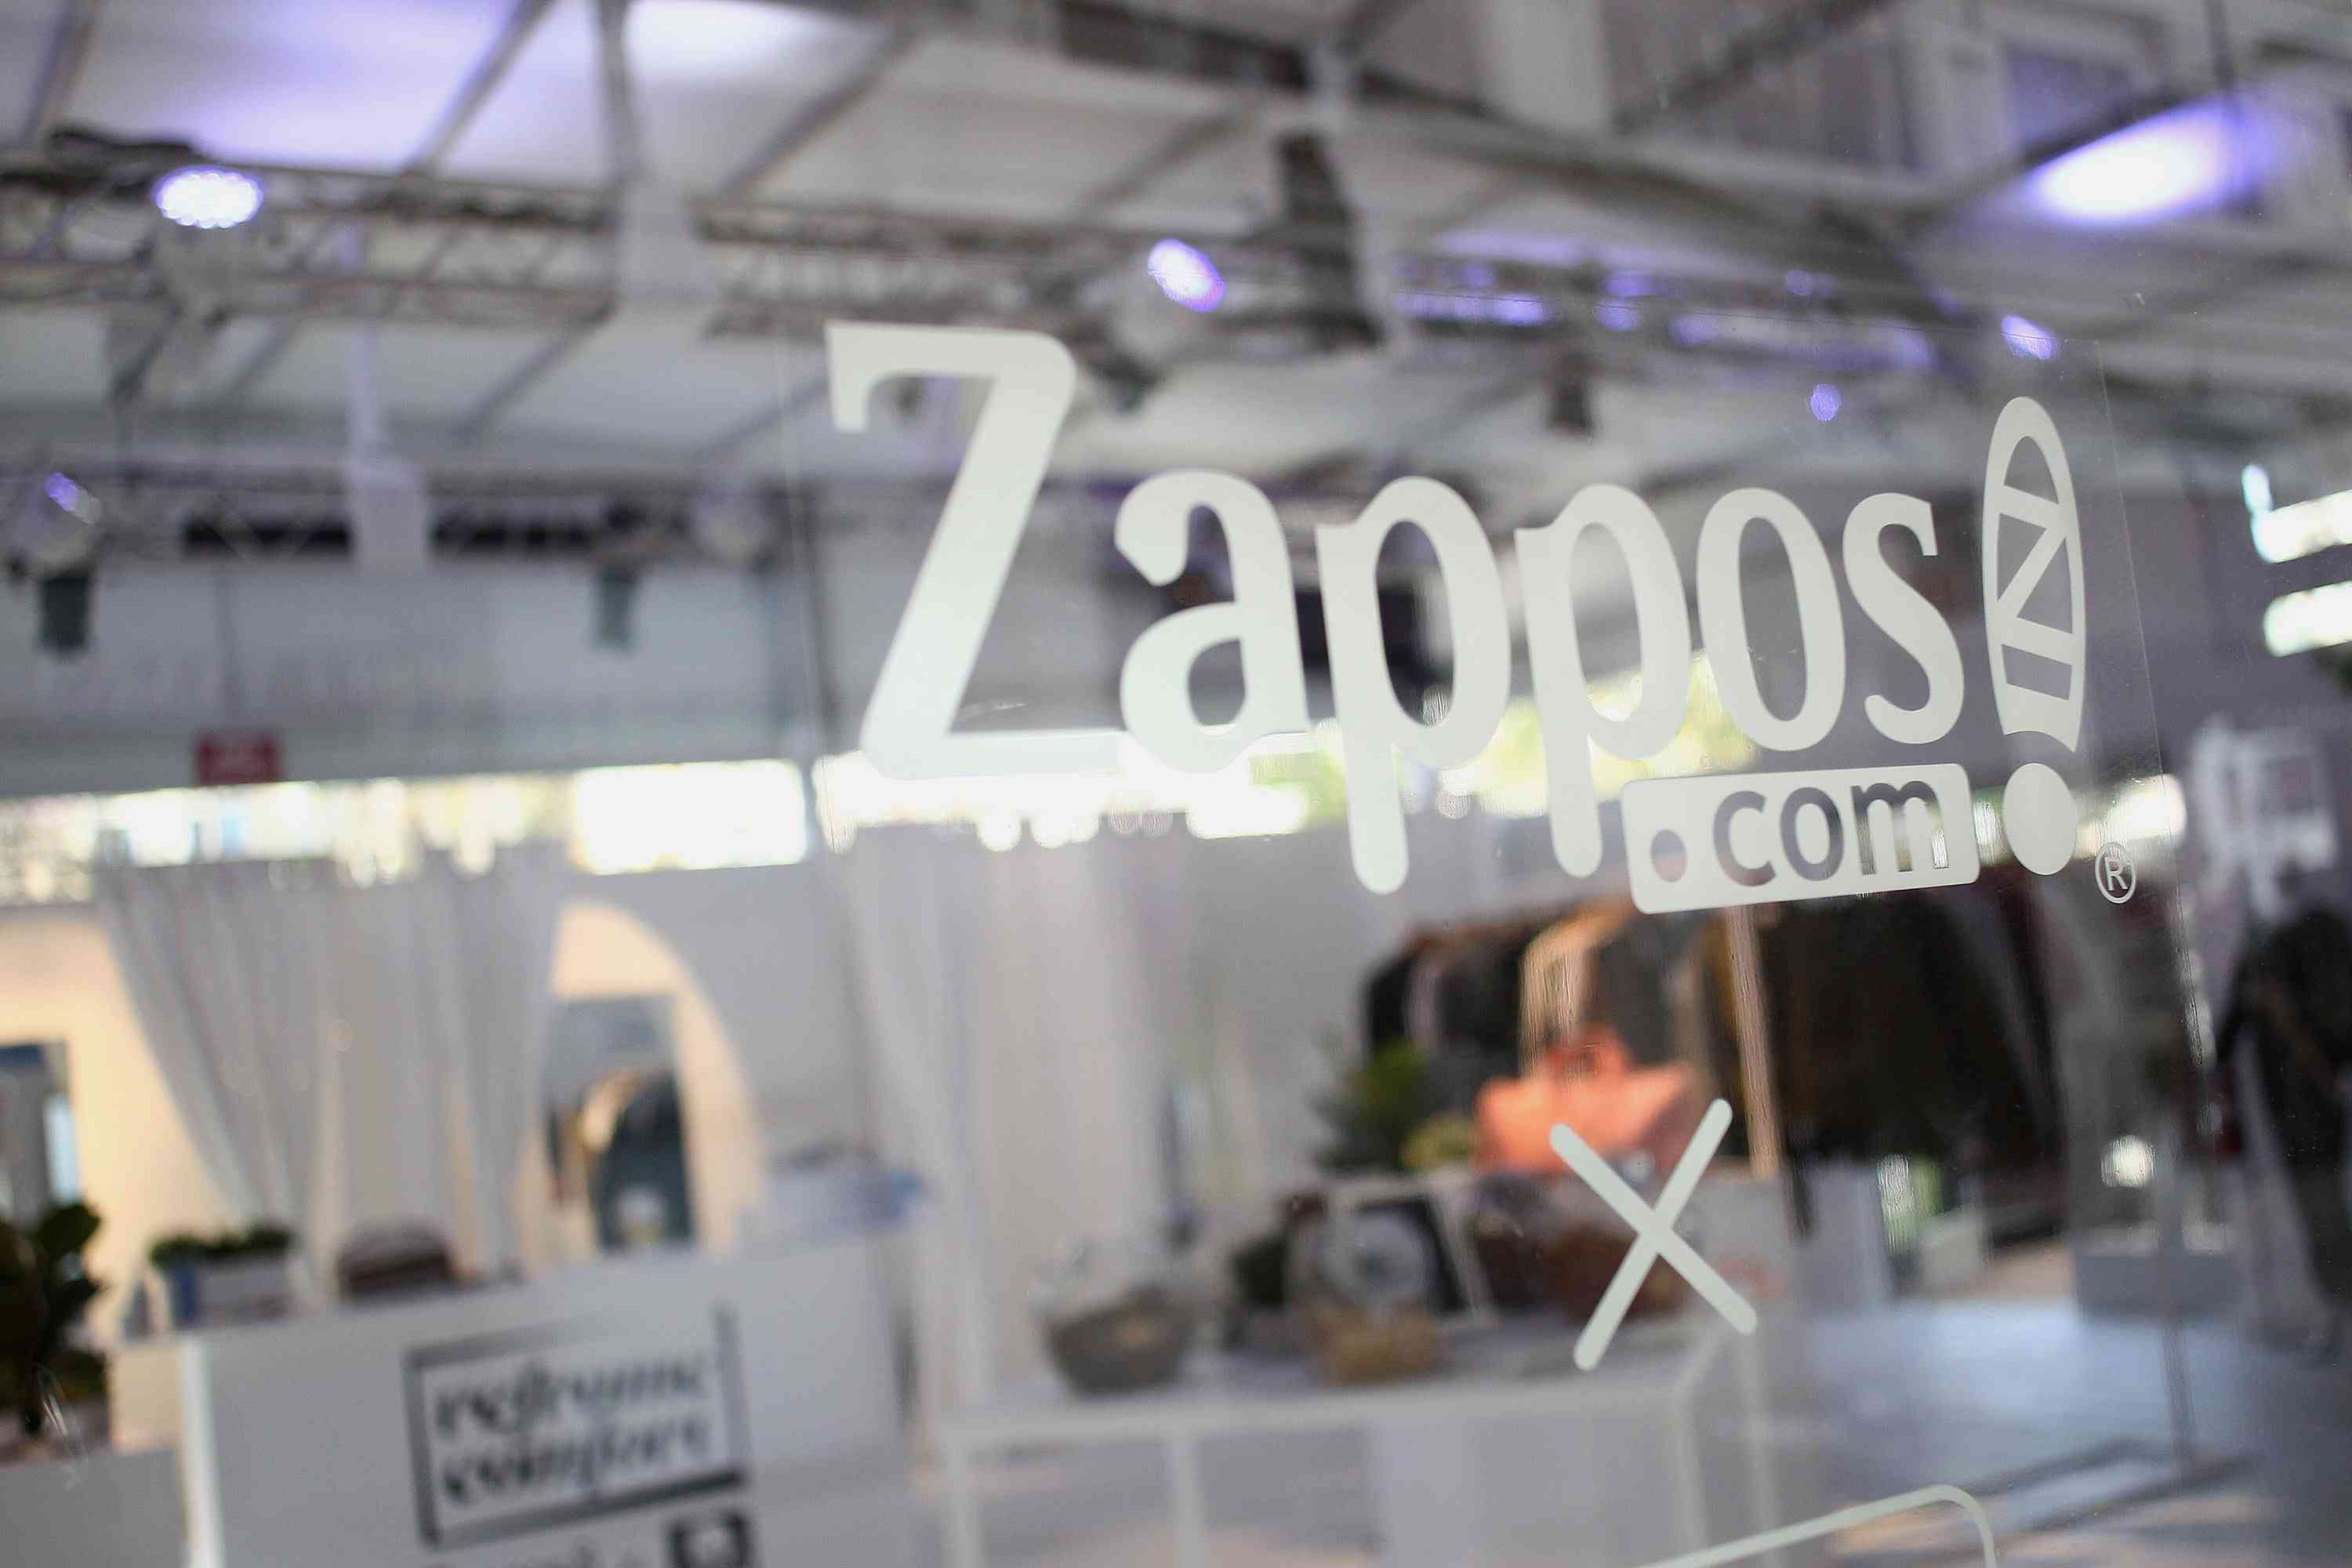 An image of the Zappos logo on a glass door.